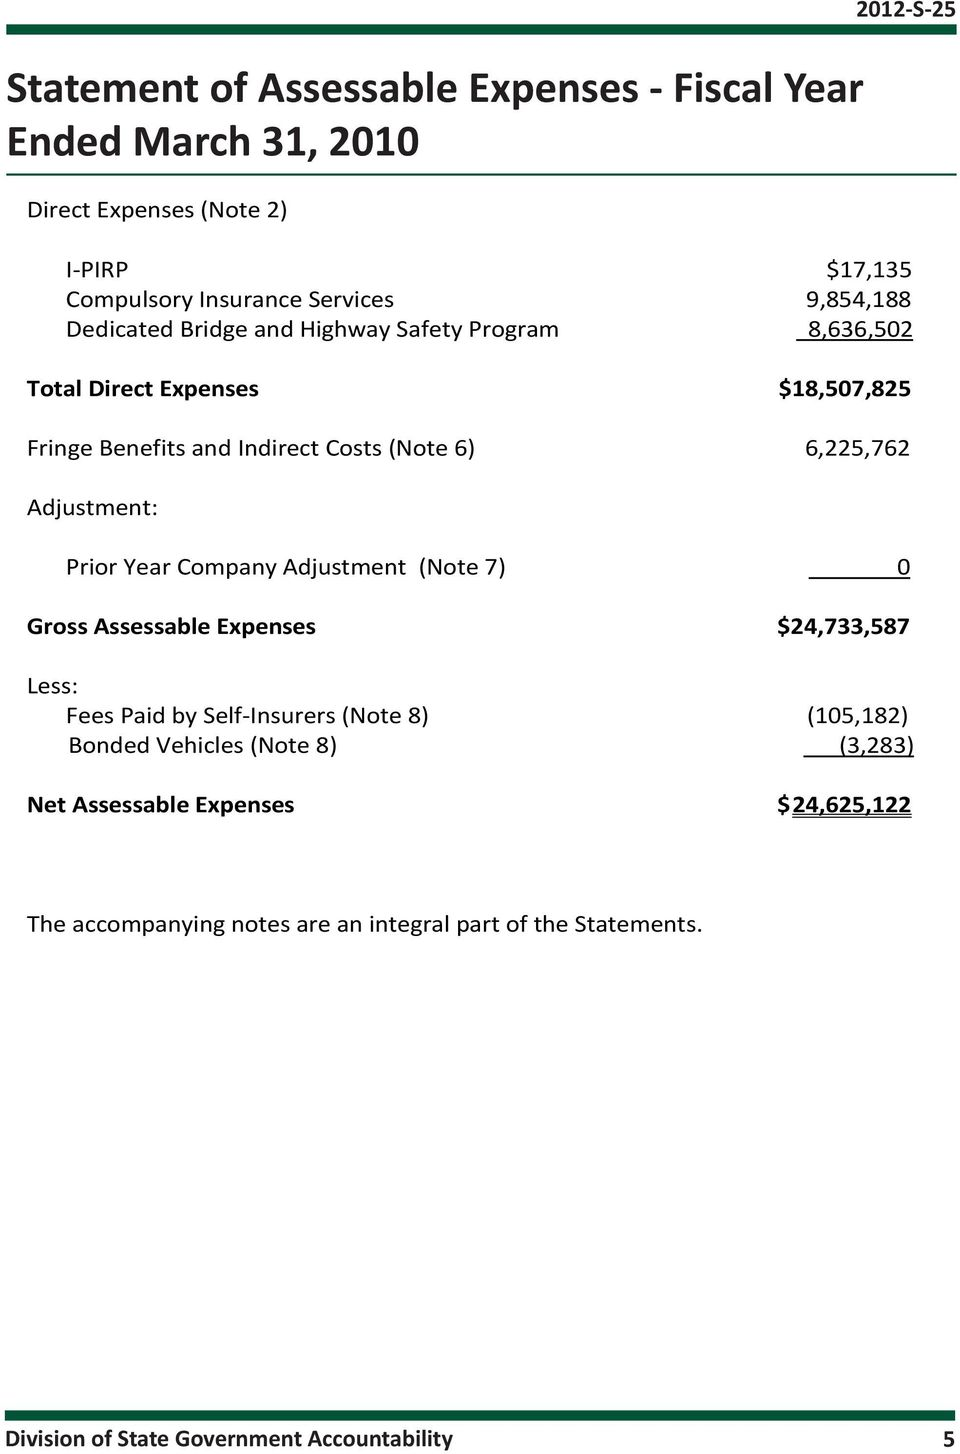 Adjustment: Prior Year Company Adjustment (Note 7) 0 Gross Assessable Expenses $24,733,587 Less: Fees Paid by Self-Insurers (Note 8) (105,182) Bonded